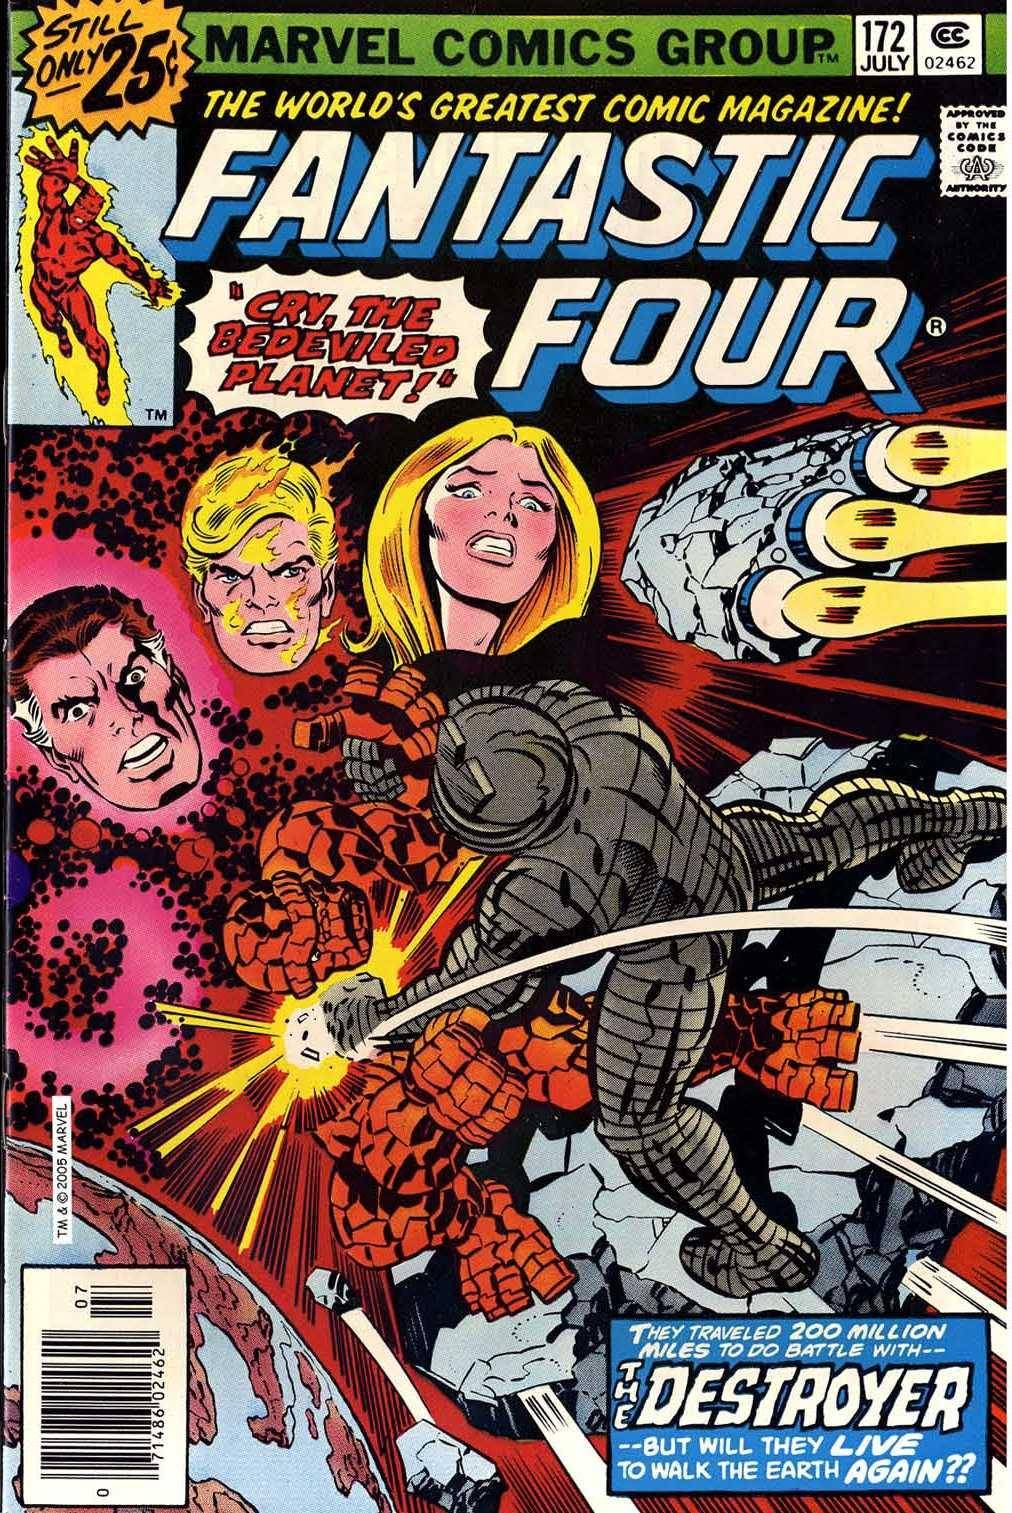 Fantastic Four v1 172 (Marvel DVD Collection)